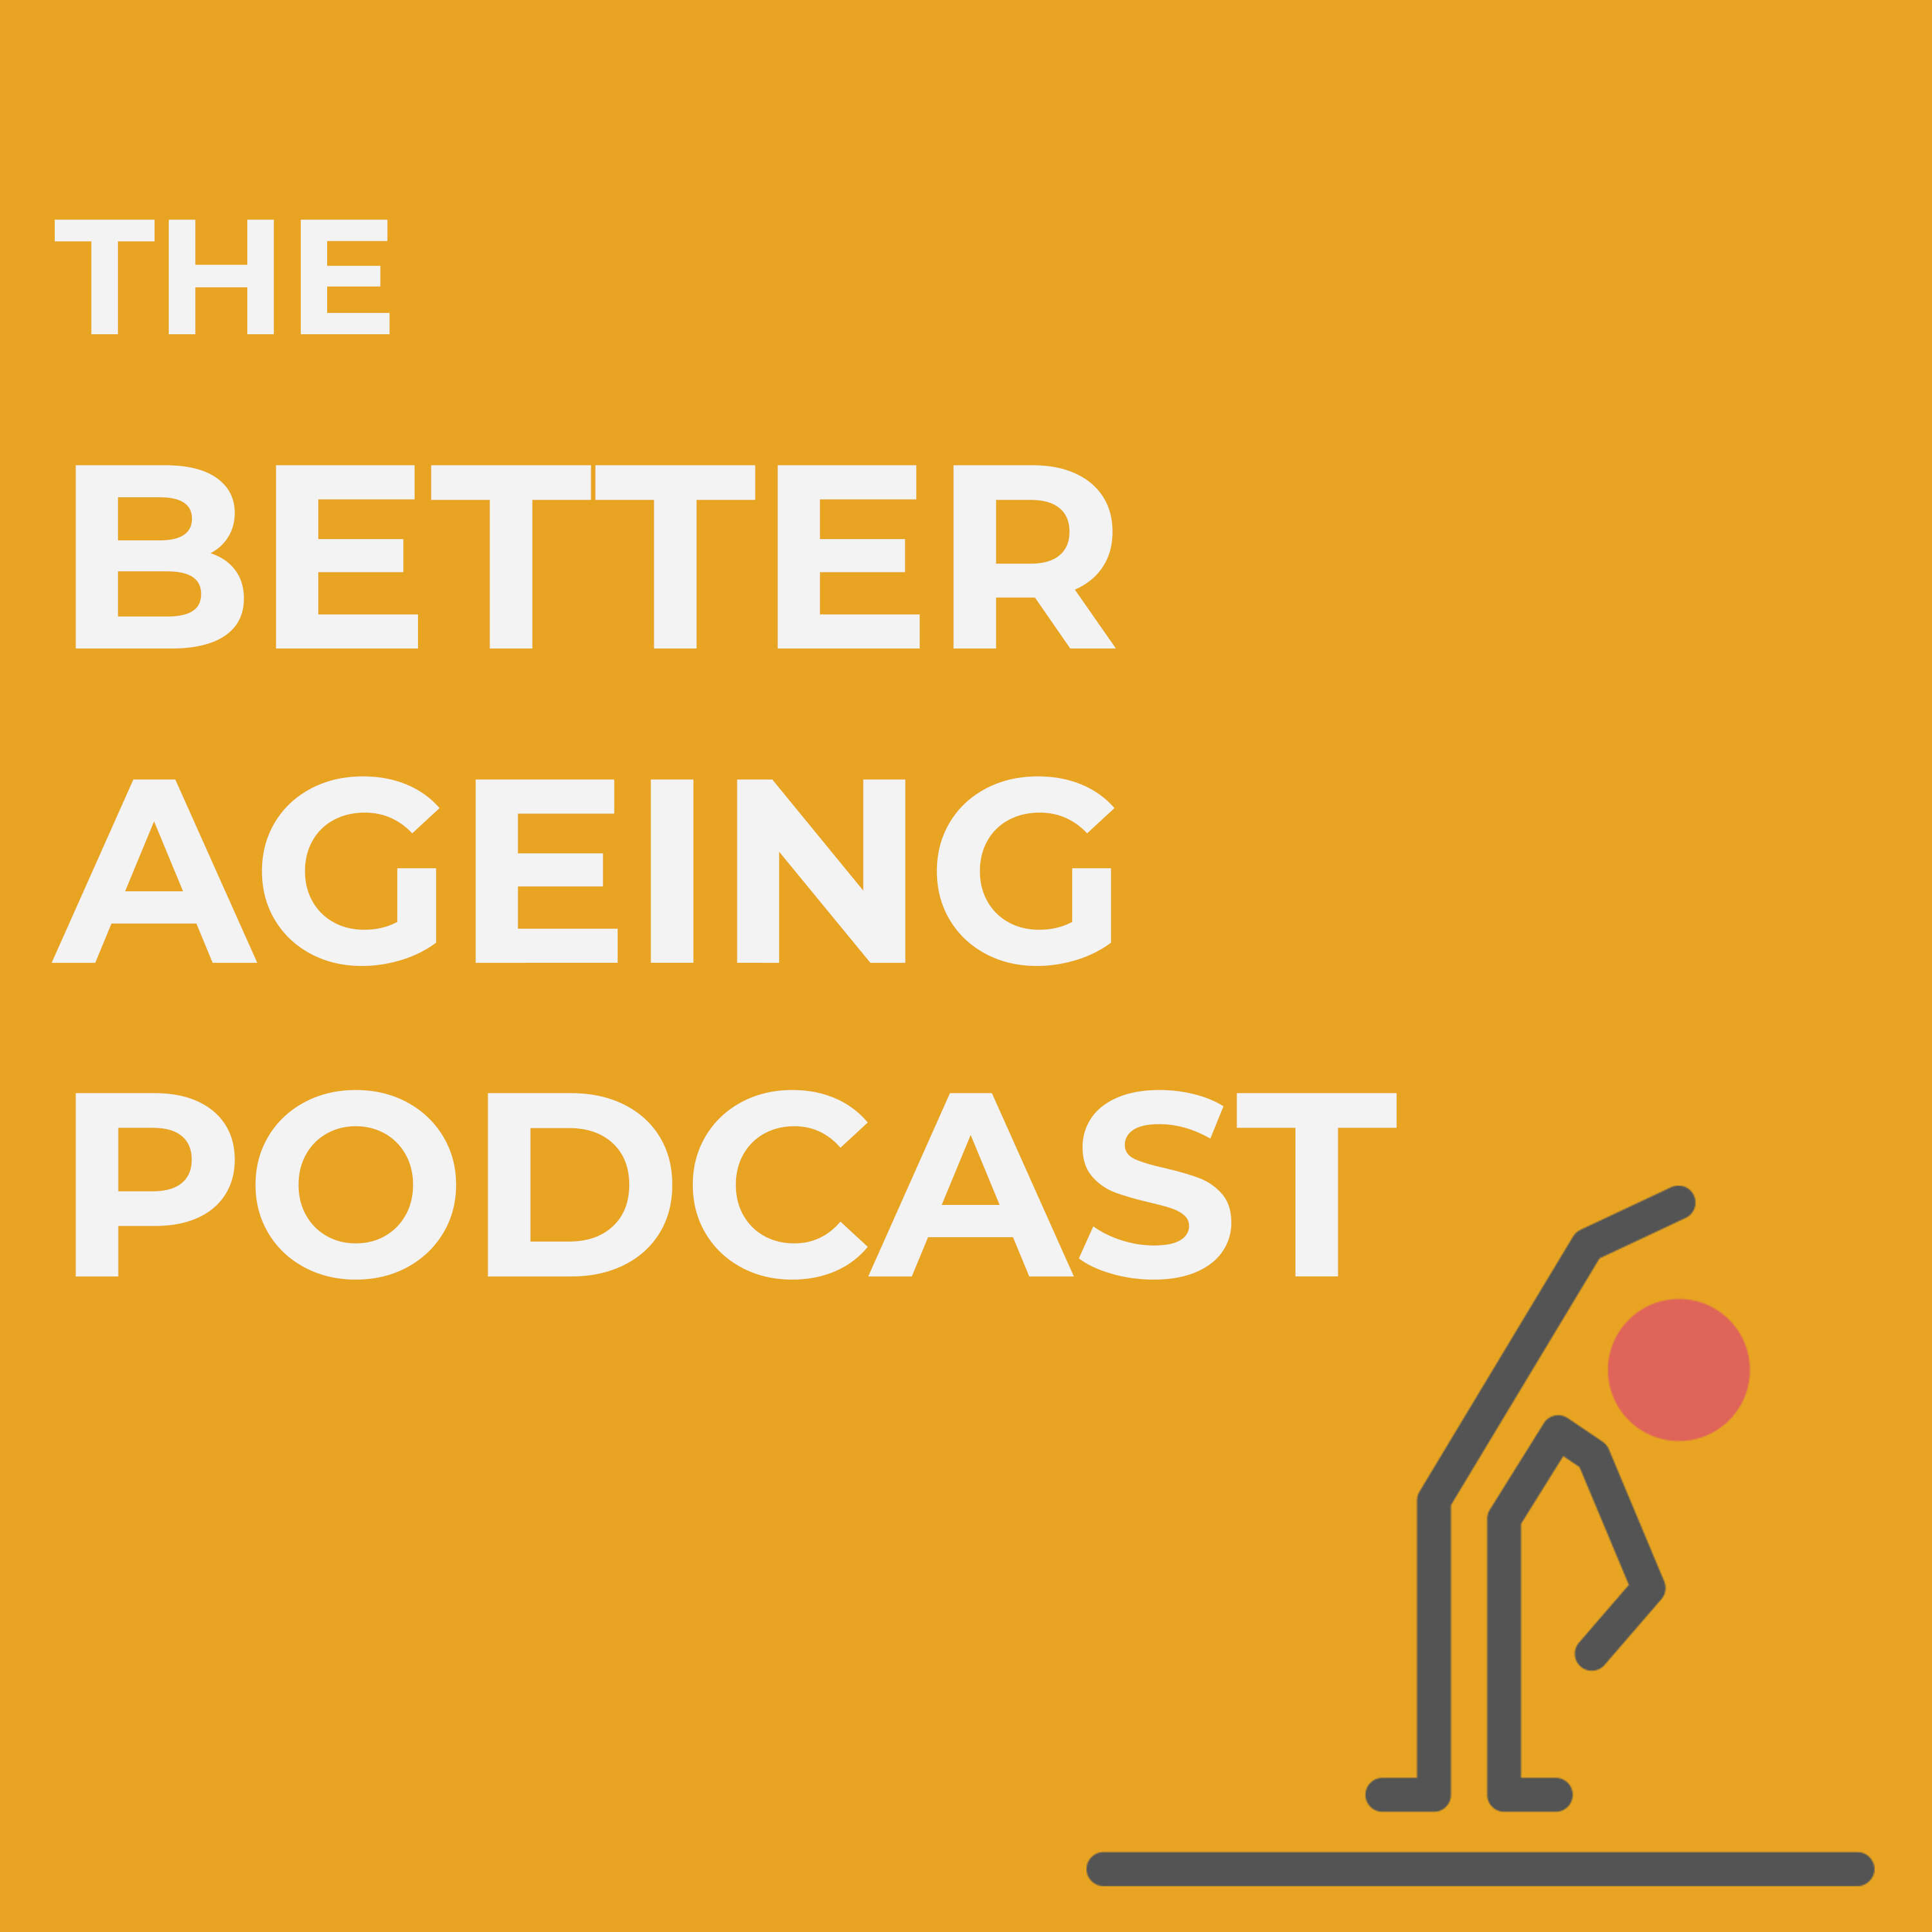 The Better Ageing Podcast